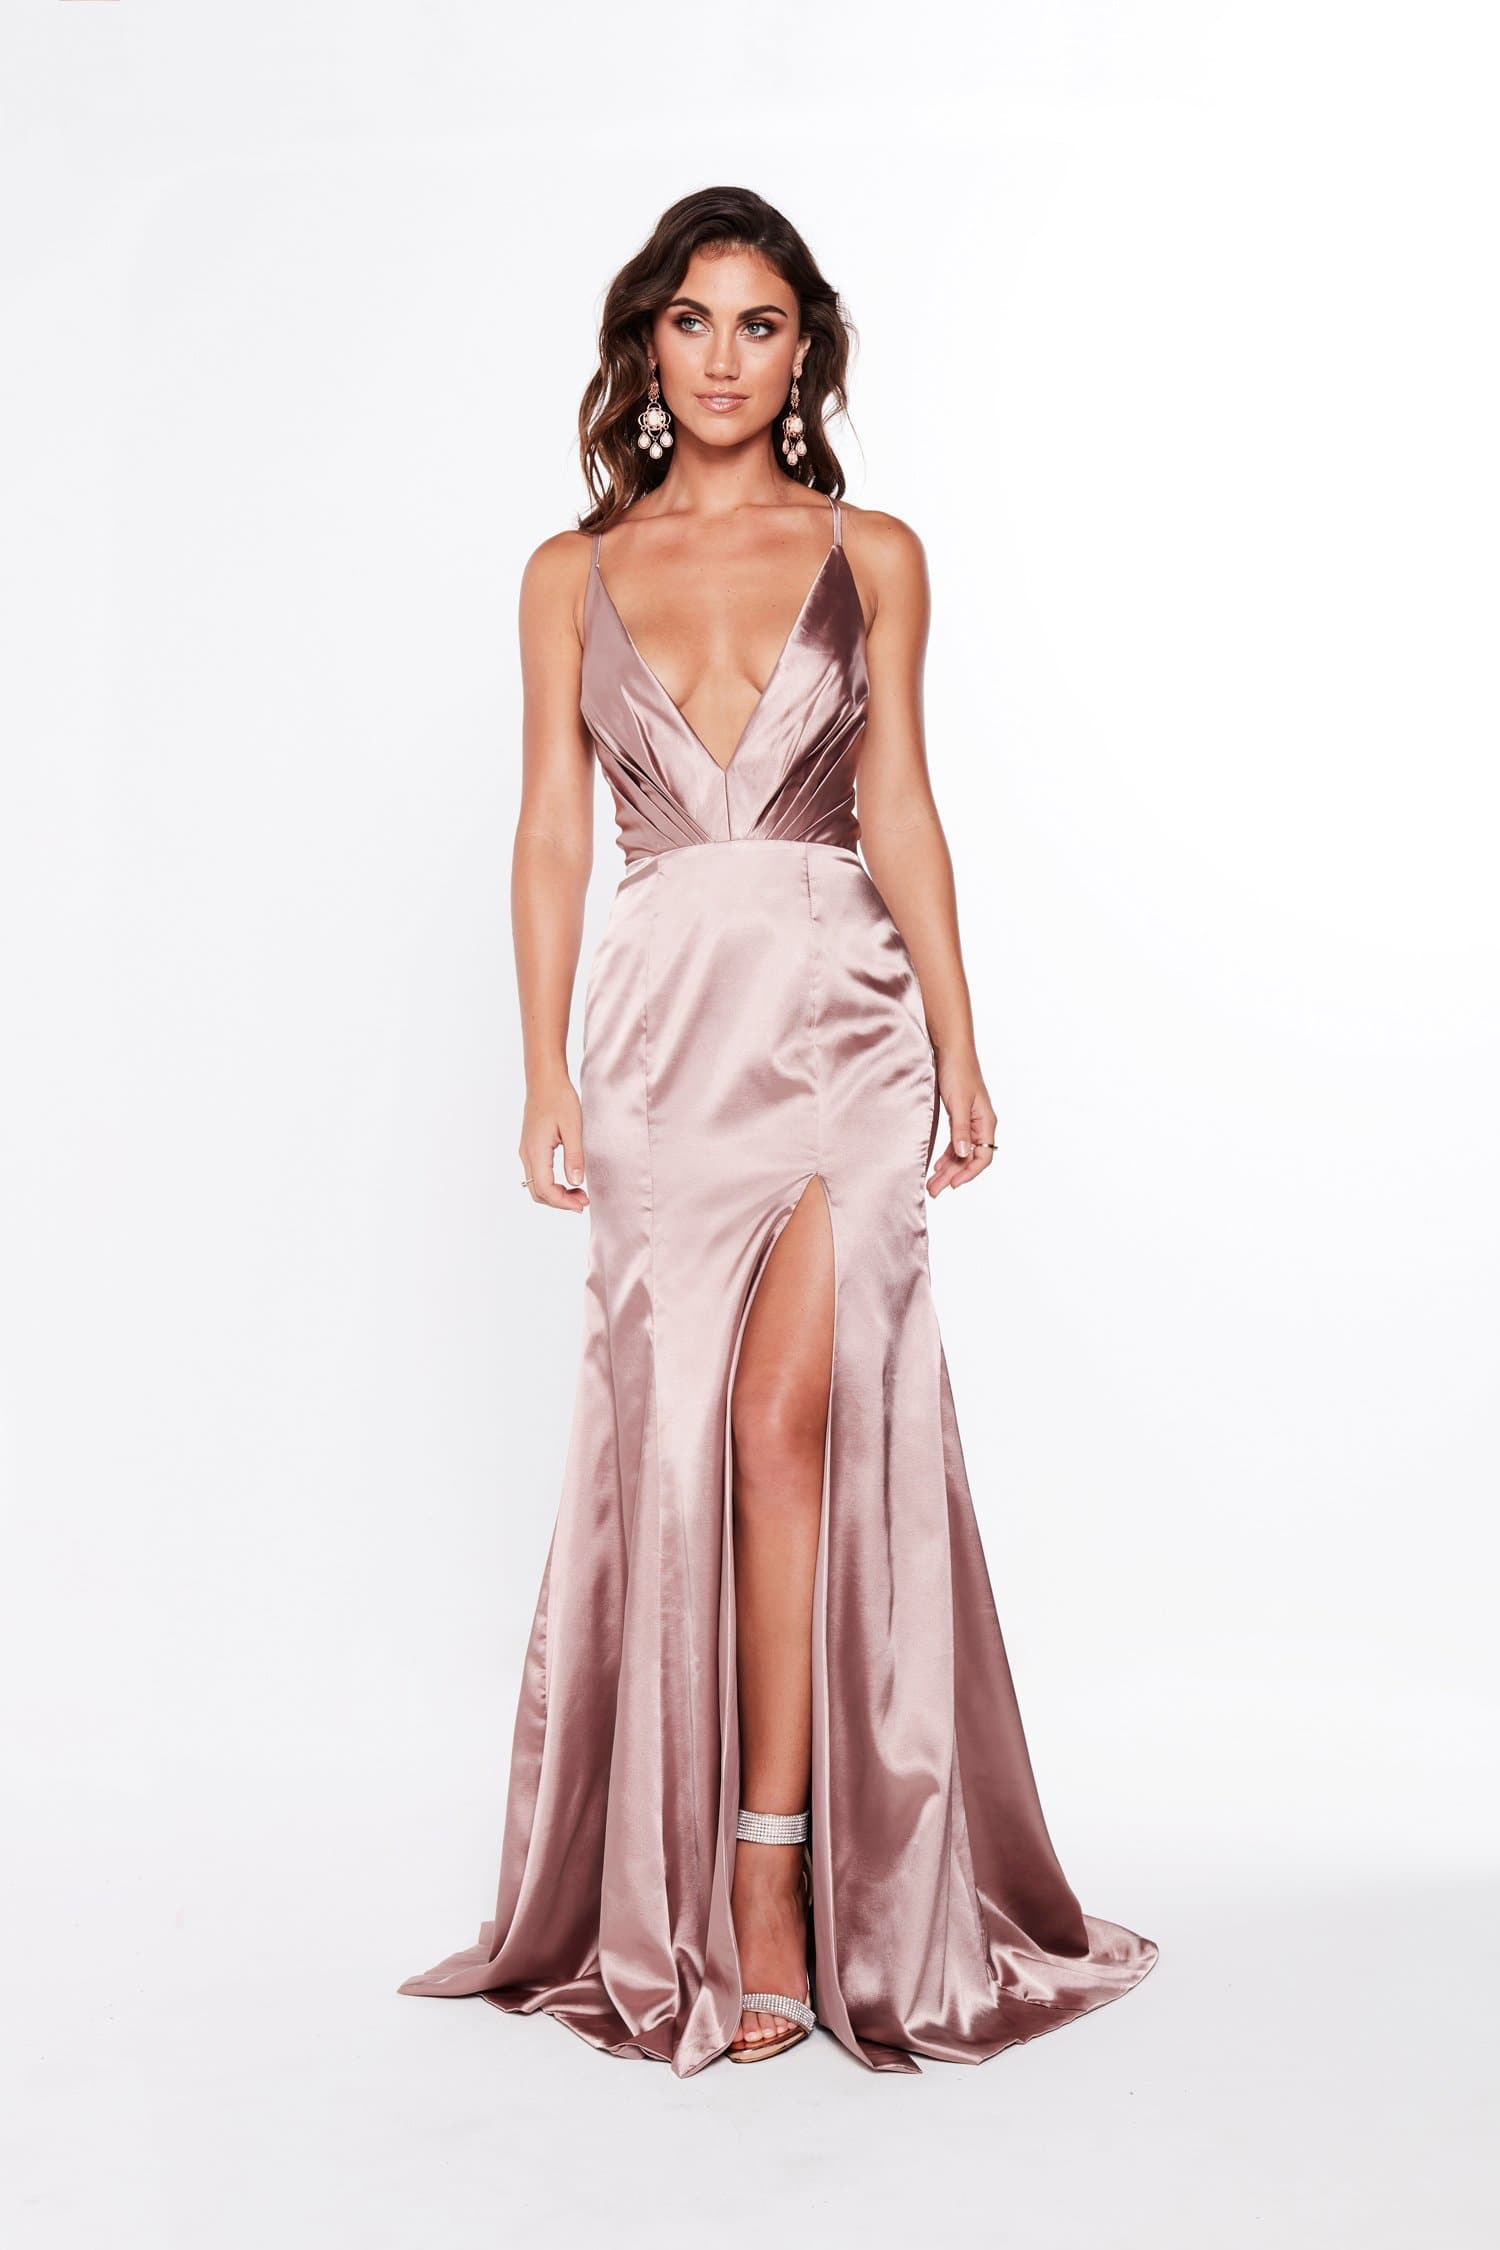 A&N Miranda - Mauve Satin Gown with Plunge Neckline and Side Slit